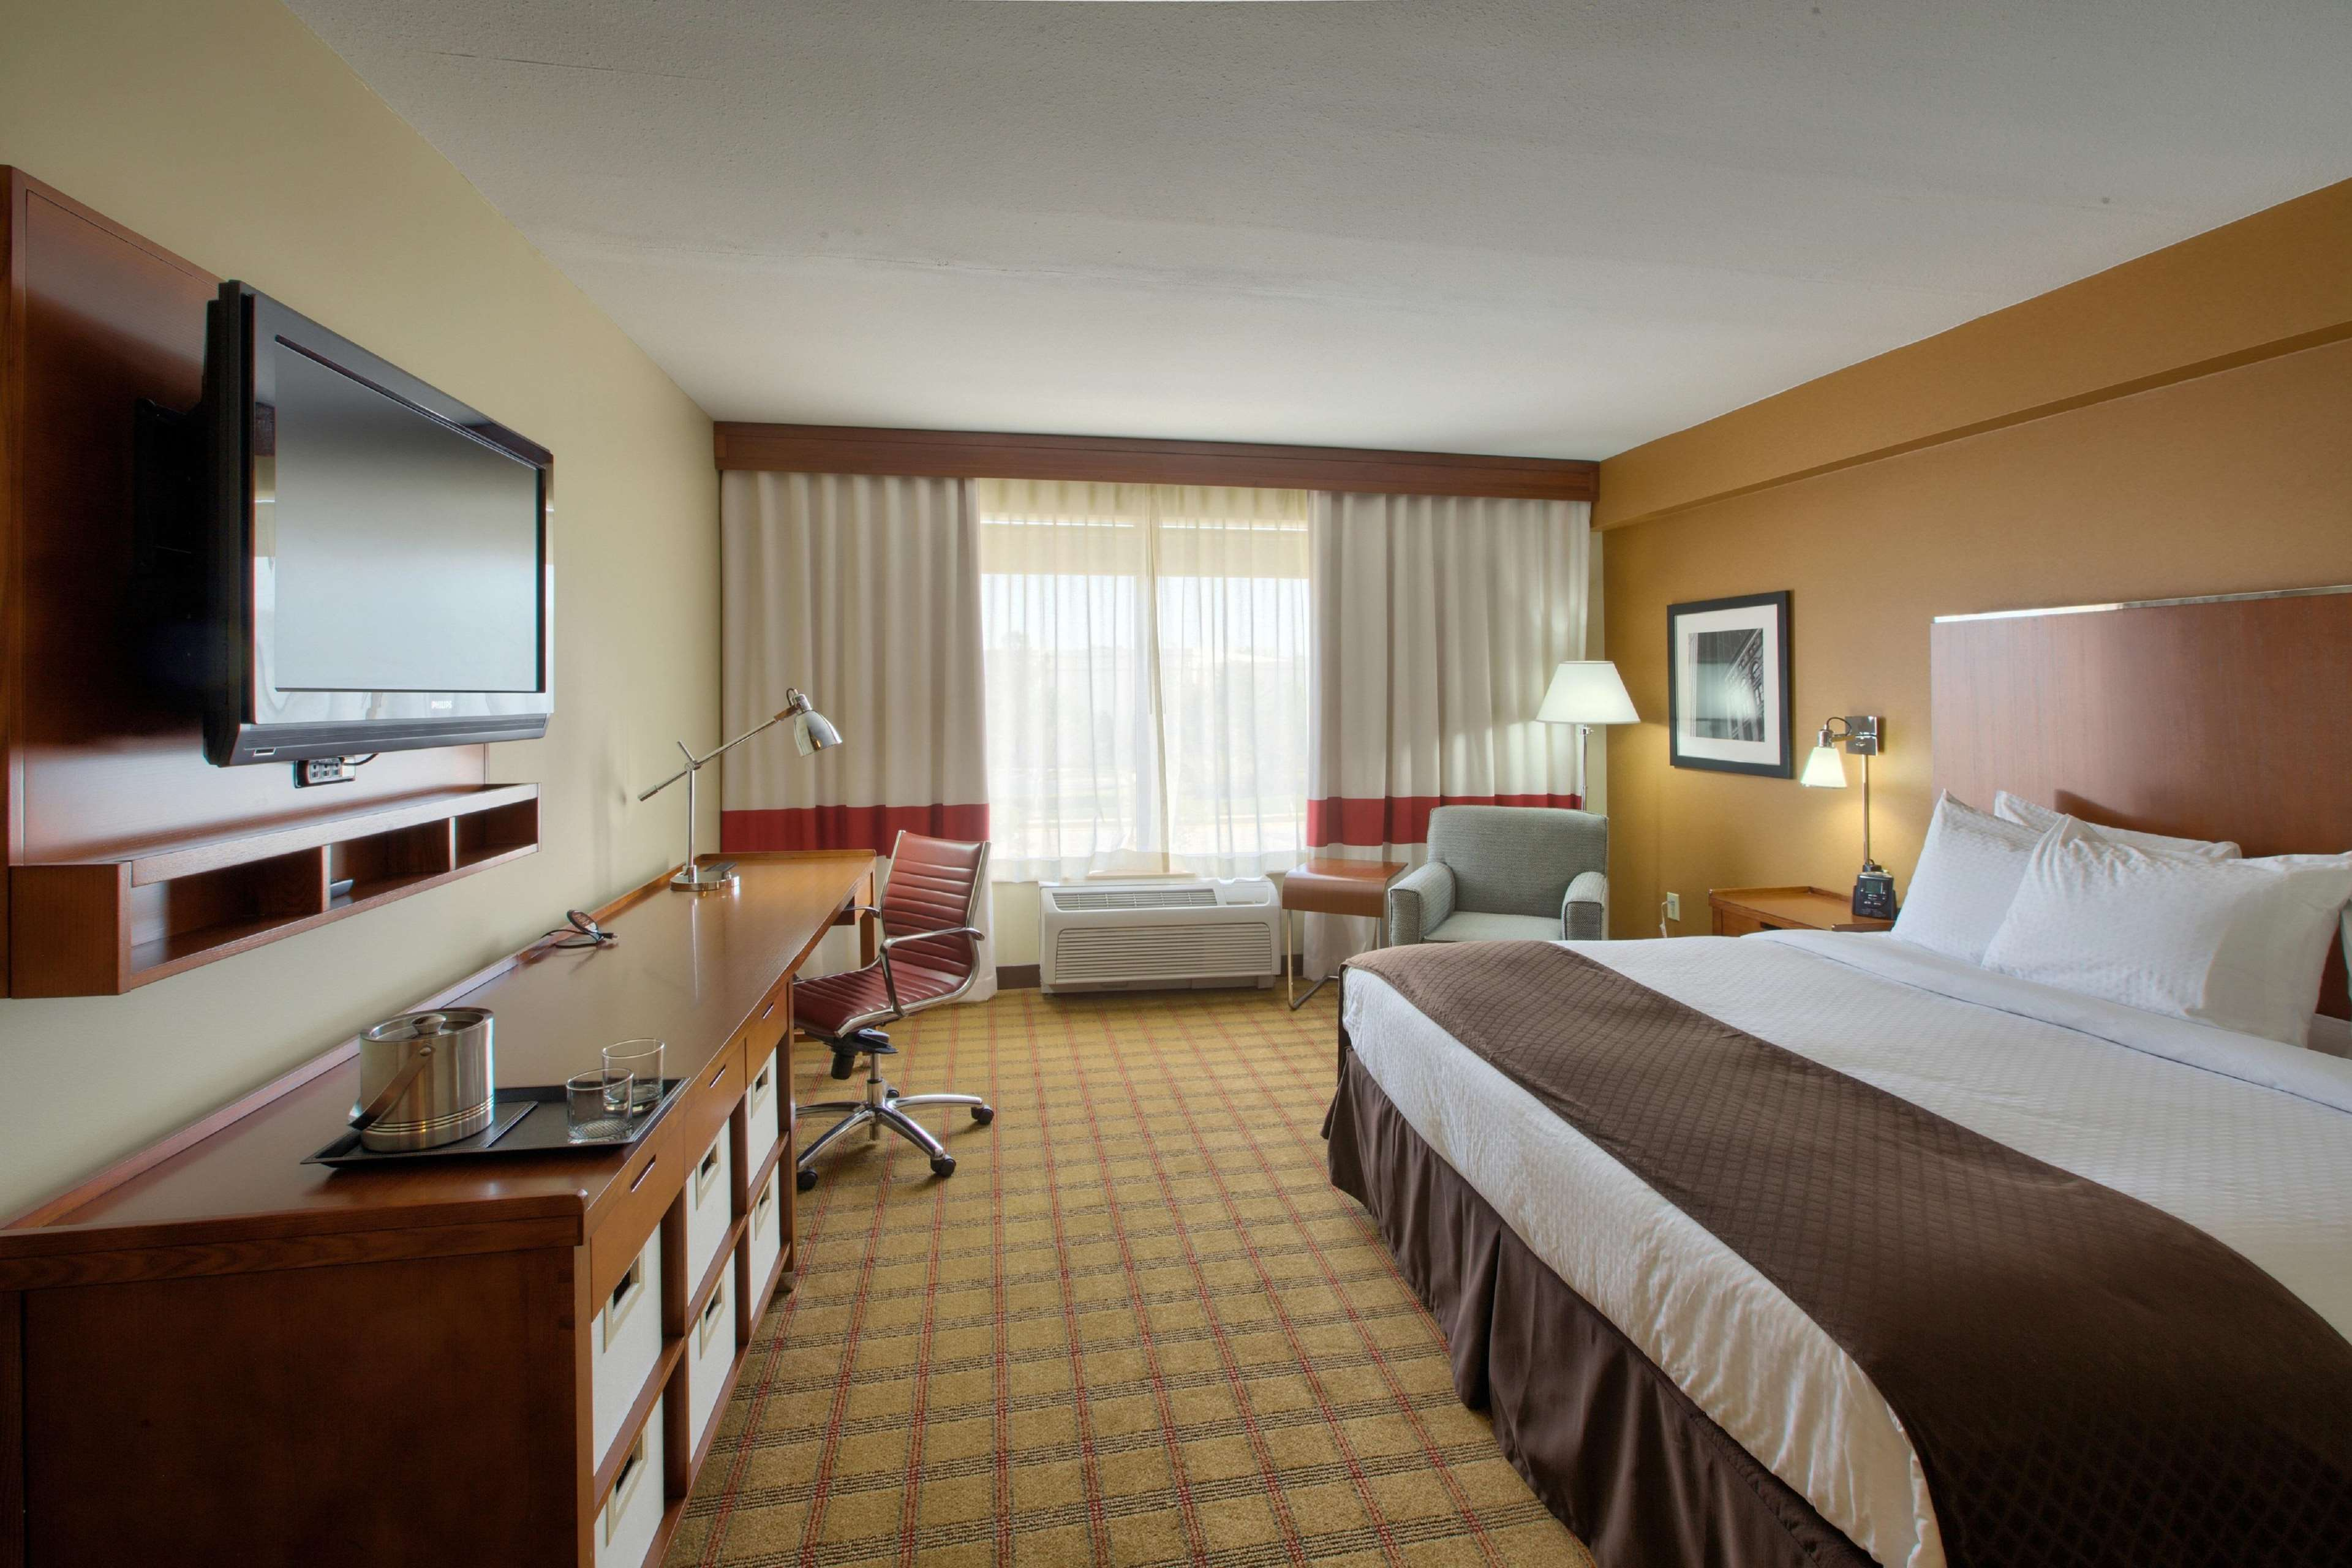 DoubleTree by Hilton Hotel Raleigh - Cary image 0